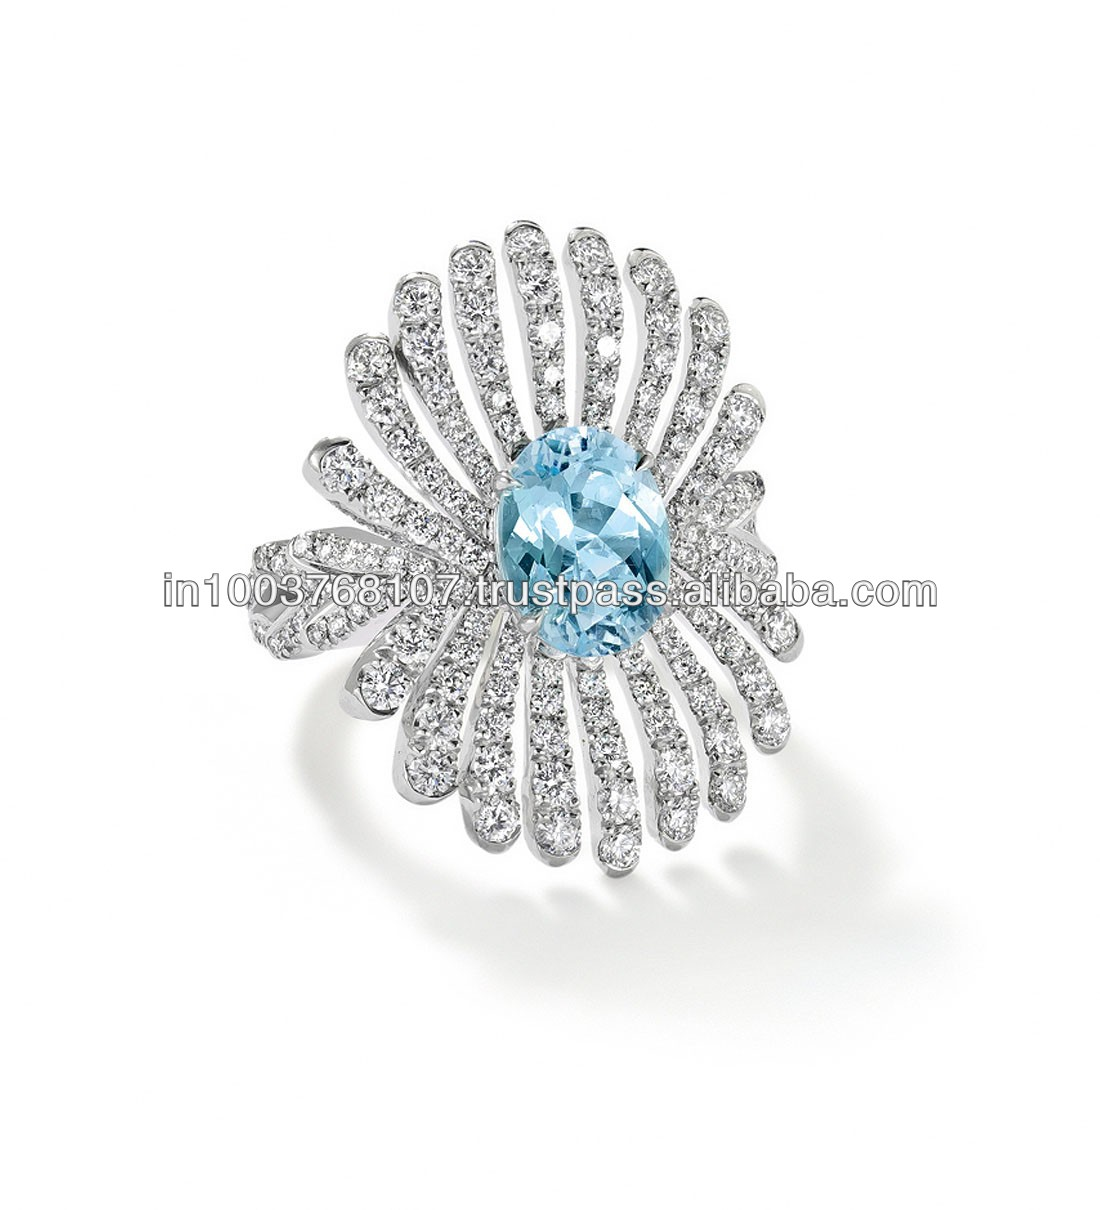 mount pendant diamond store designer product jewellery products online